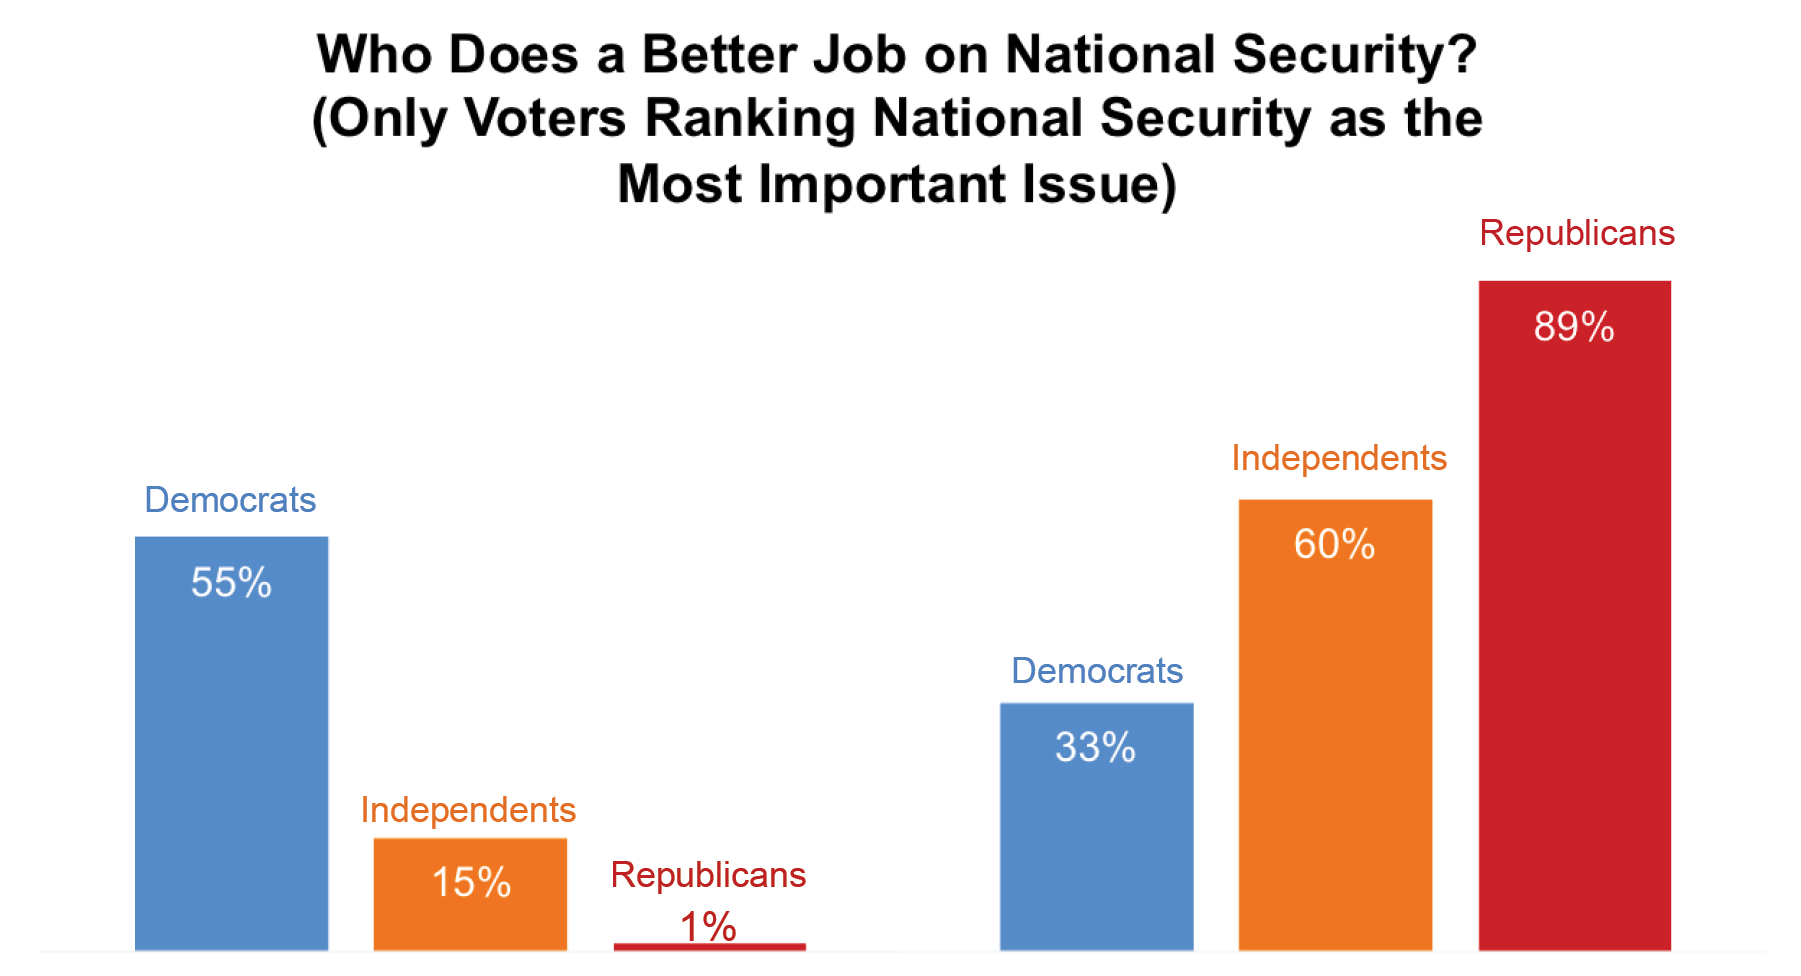 Who Does a Better Job on National Security? (Only Voters Ranking National Security as the Most Important Issue)